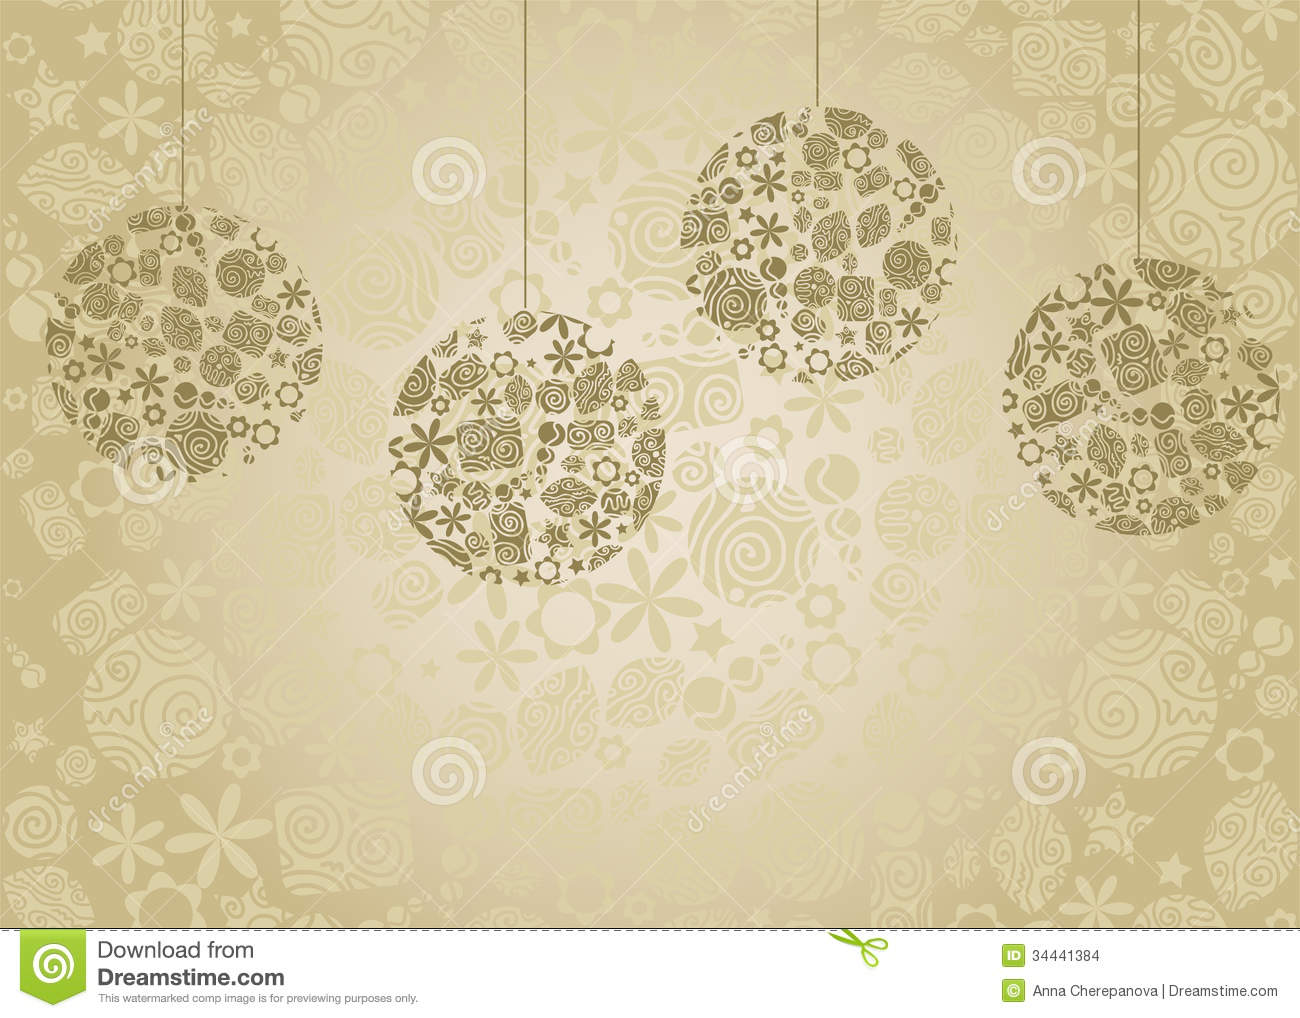 Retro christmas stock vector. Image of decor ...